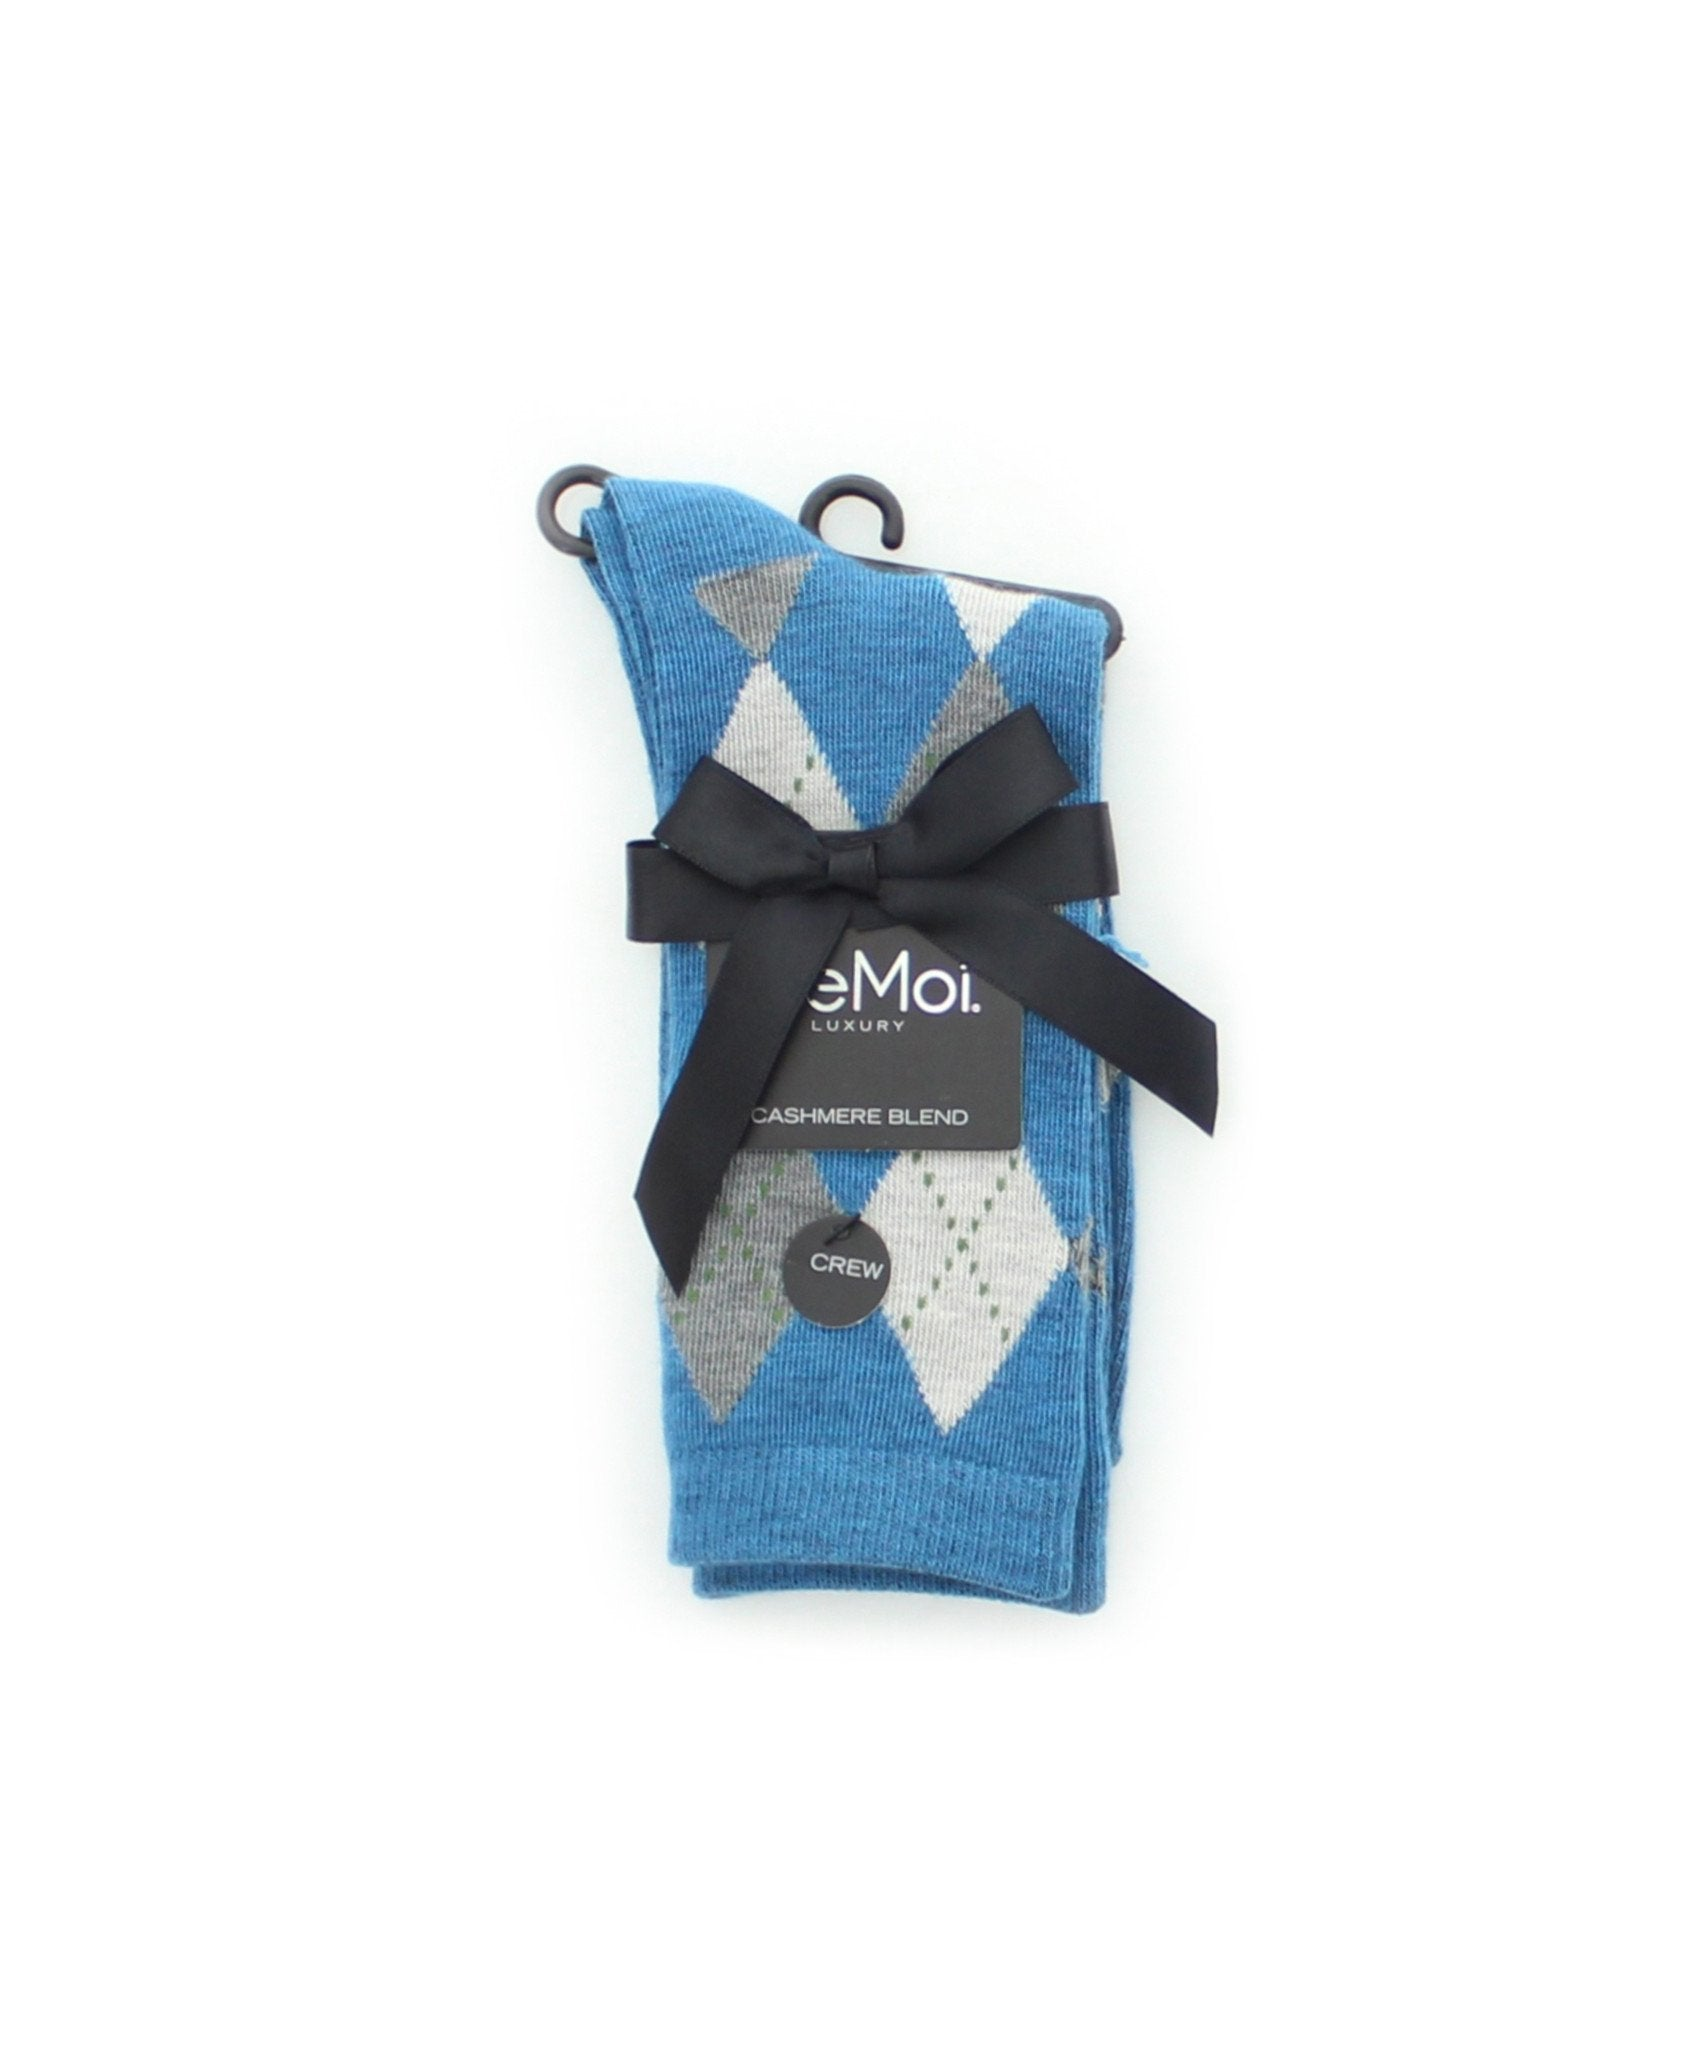 Alternate Diamonds Cashmere Blend Crew Socks - MeMoi - 2